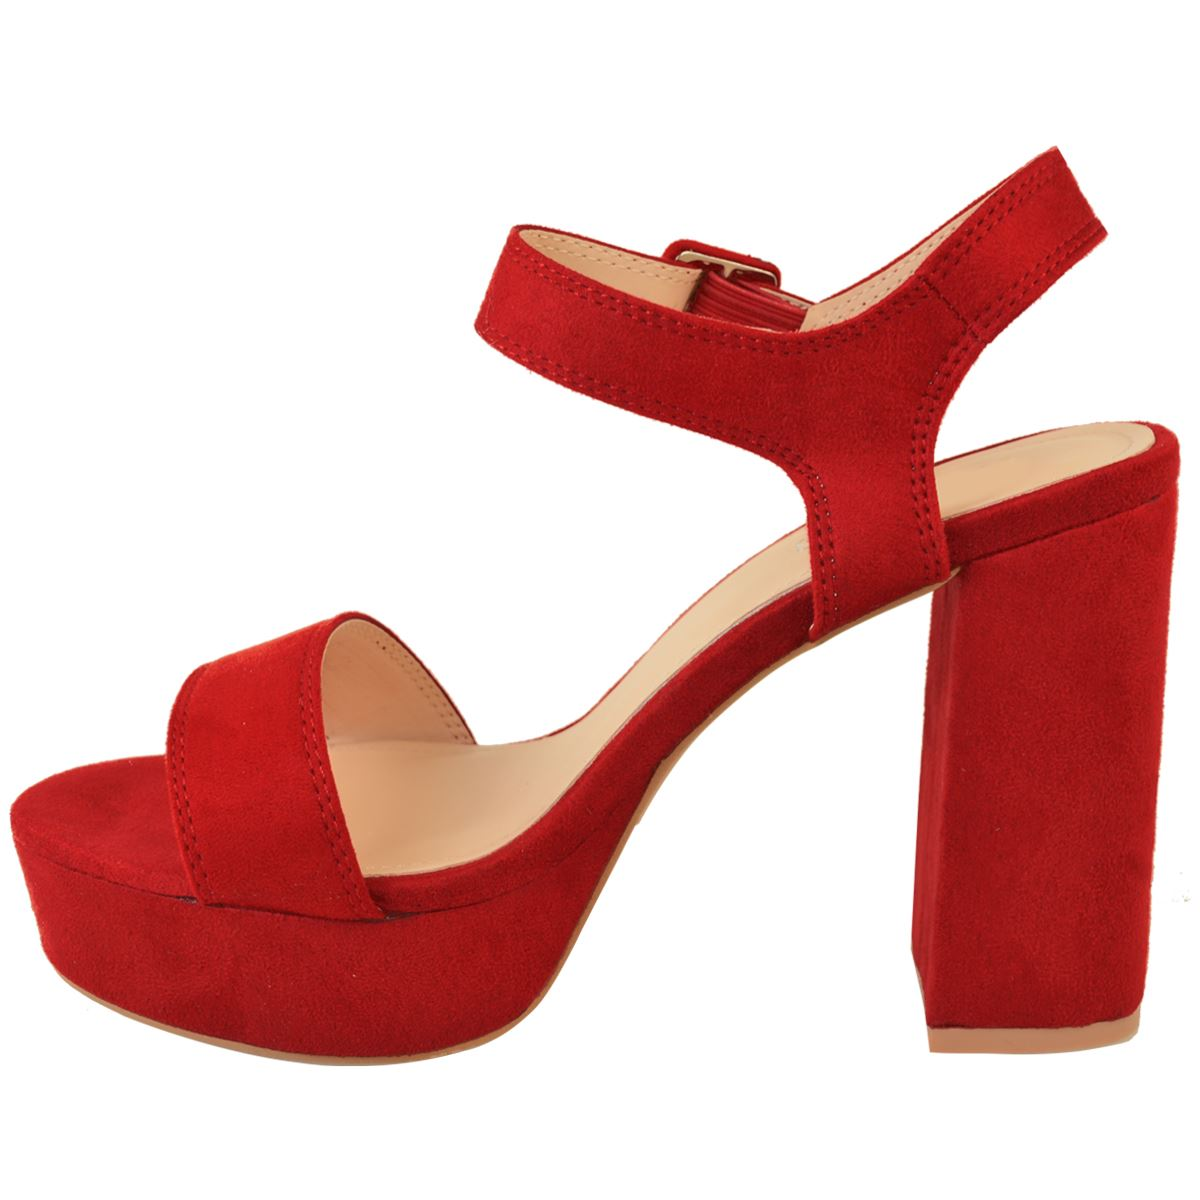 New-Womens-Summer-Platform-High-Heel-Sandals-Ladies-Open-Toe-Strappy-Party-Shoes thumbnail 40